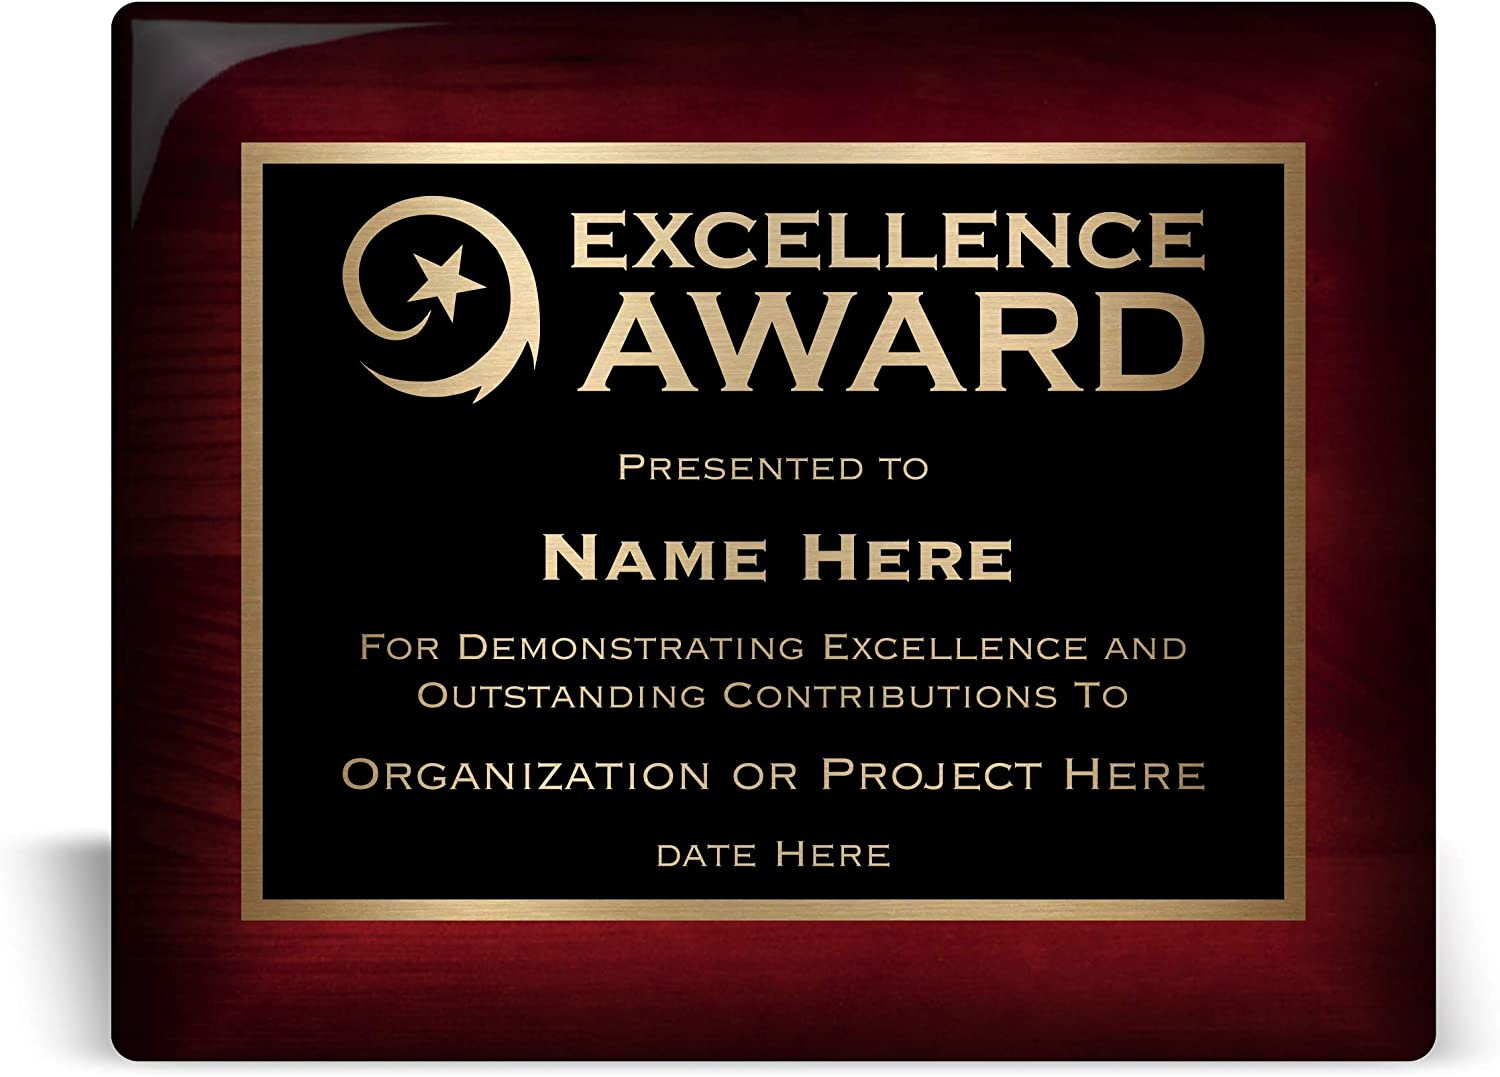 Excellence Award 10x8 Bargain Personalized 5 ☆ popular Plaque or for Perso Business